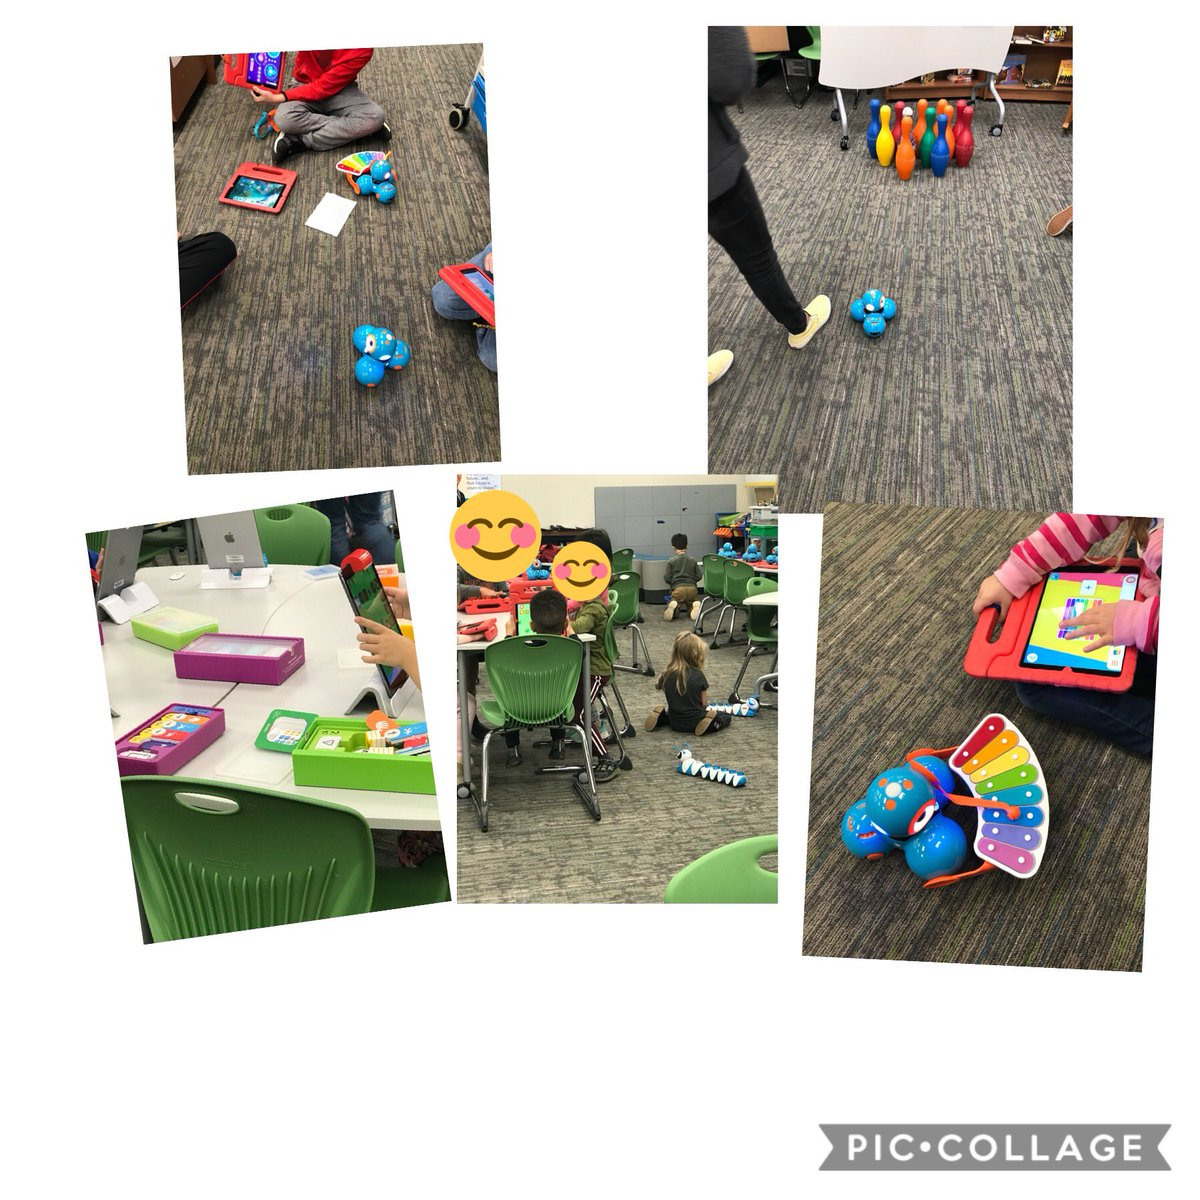 Scenes from Coding Week @pondspringslib A treat to work with Mrs. Shipp in these fun activities. #LibrariesRRock https://t.co/52IoyHes19